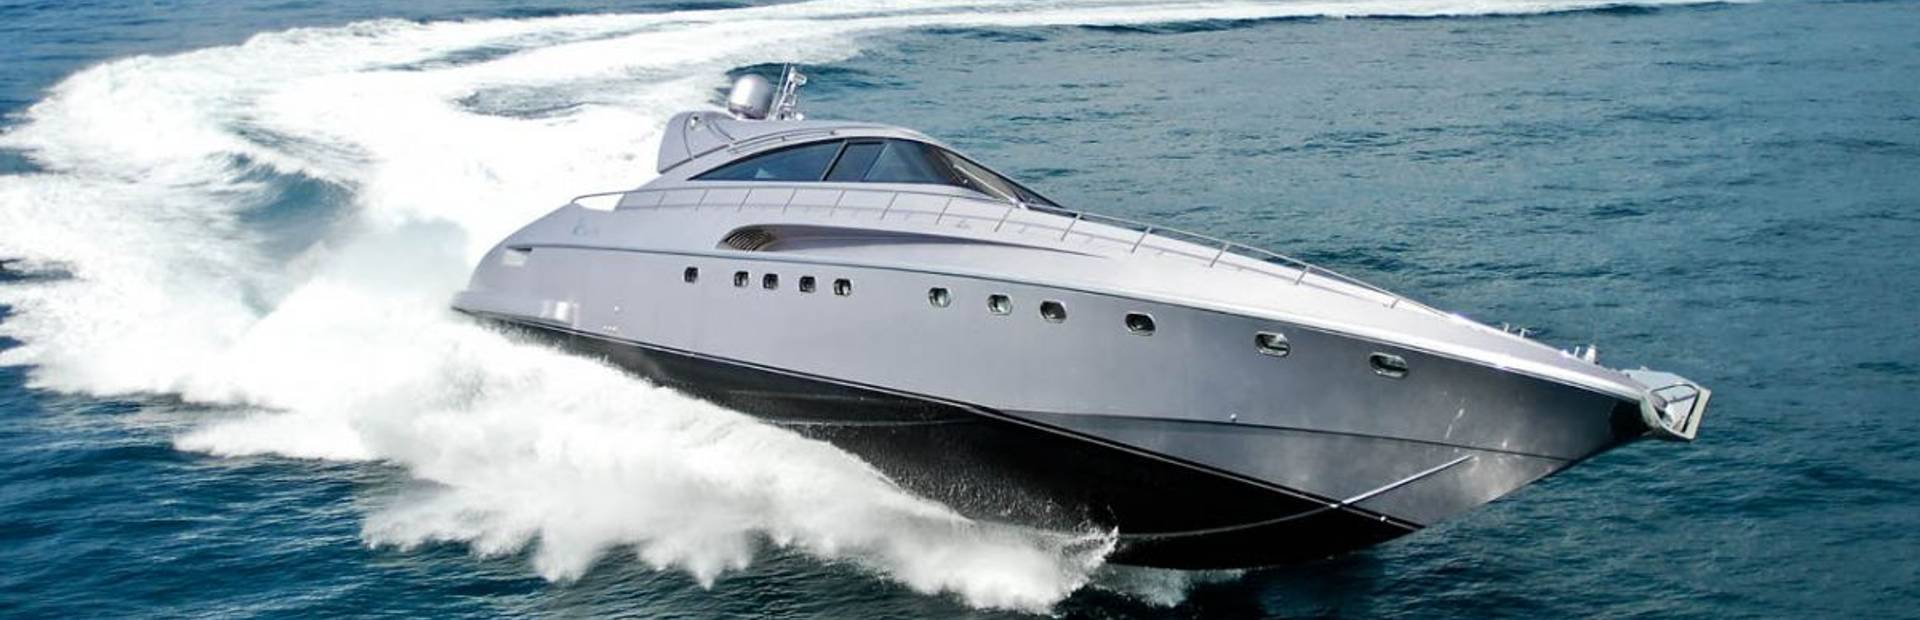 AB Yachts AB 78 Yacht Charter